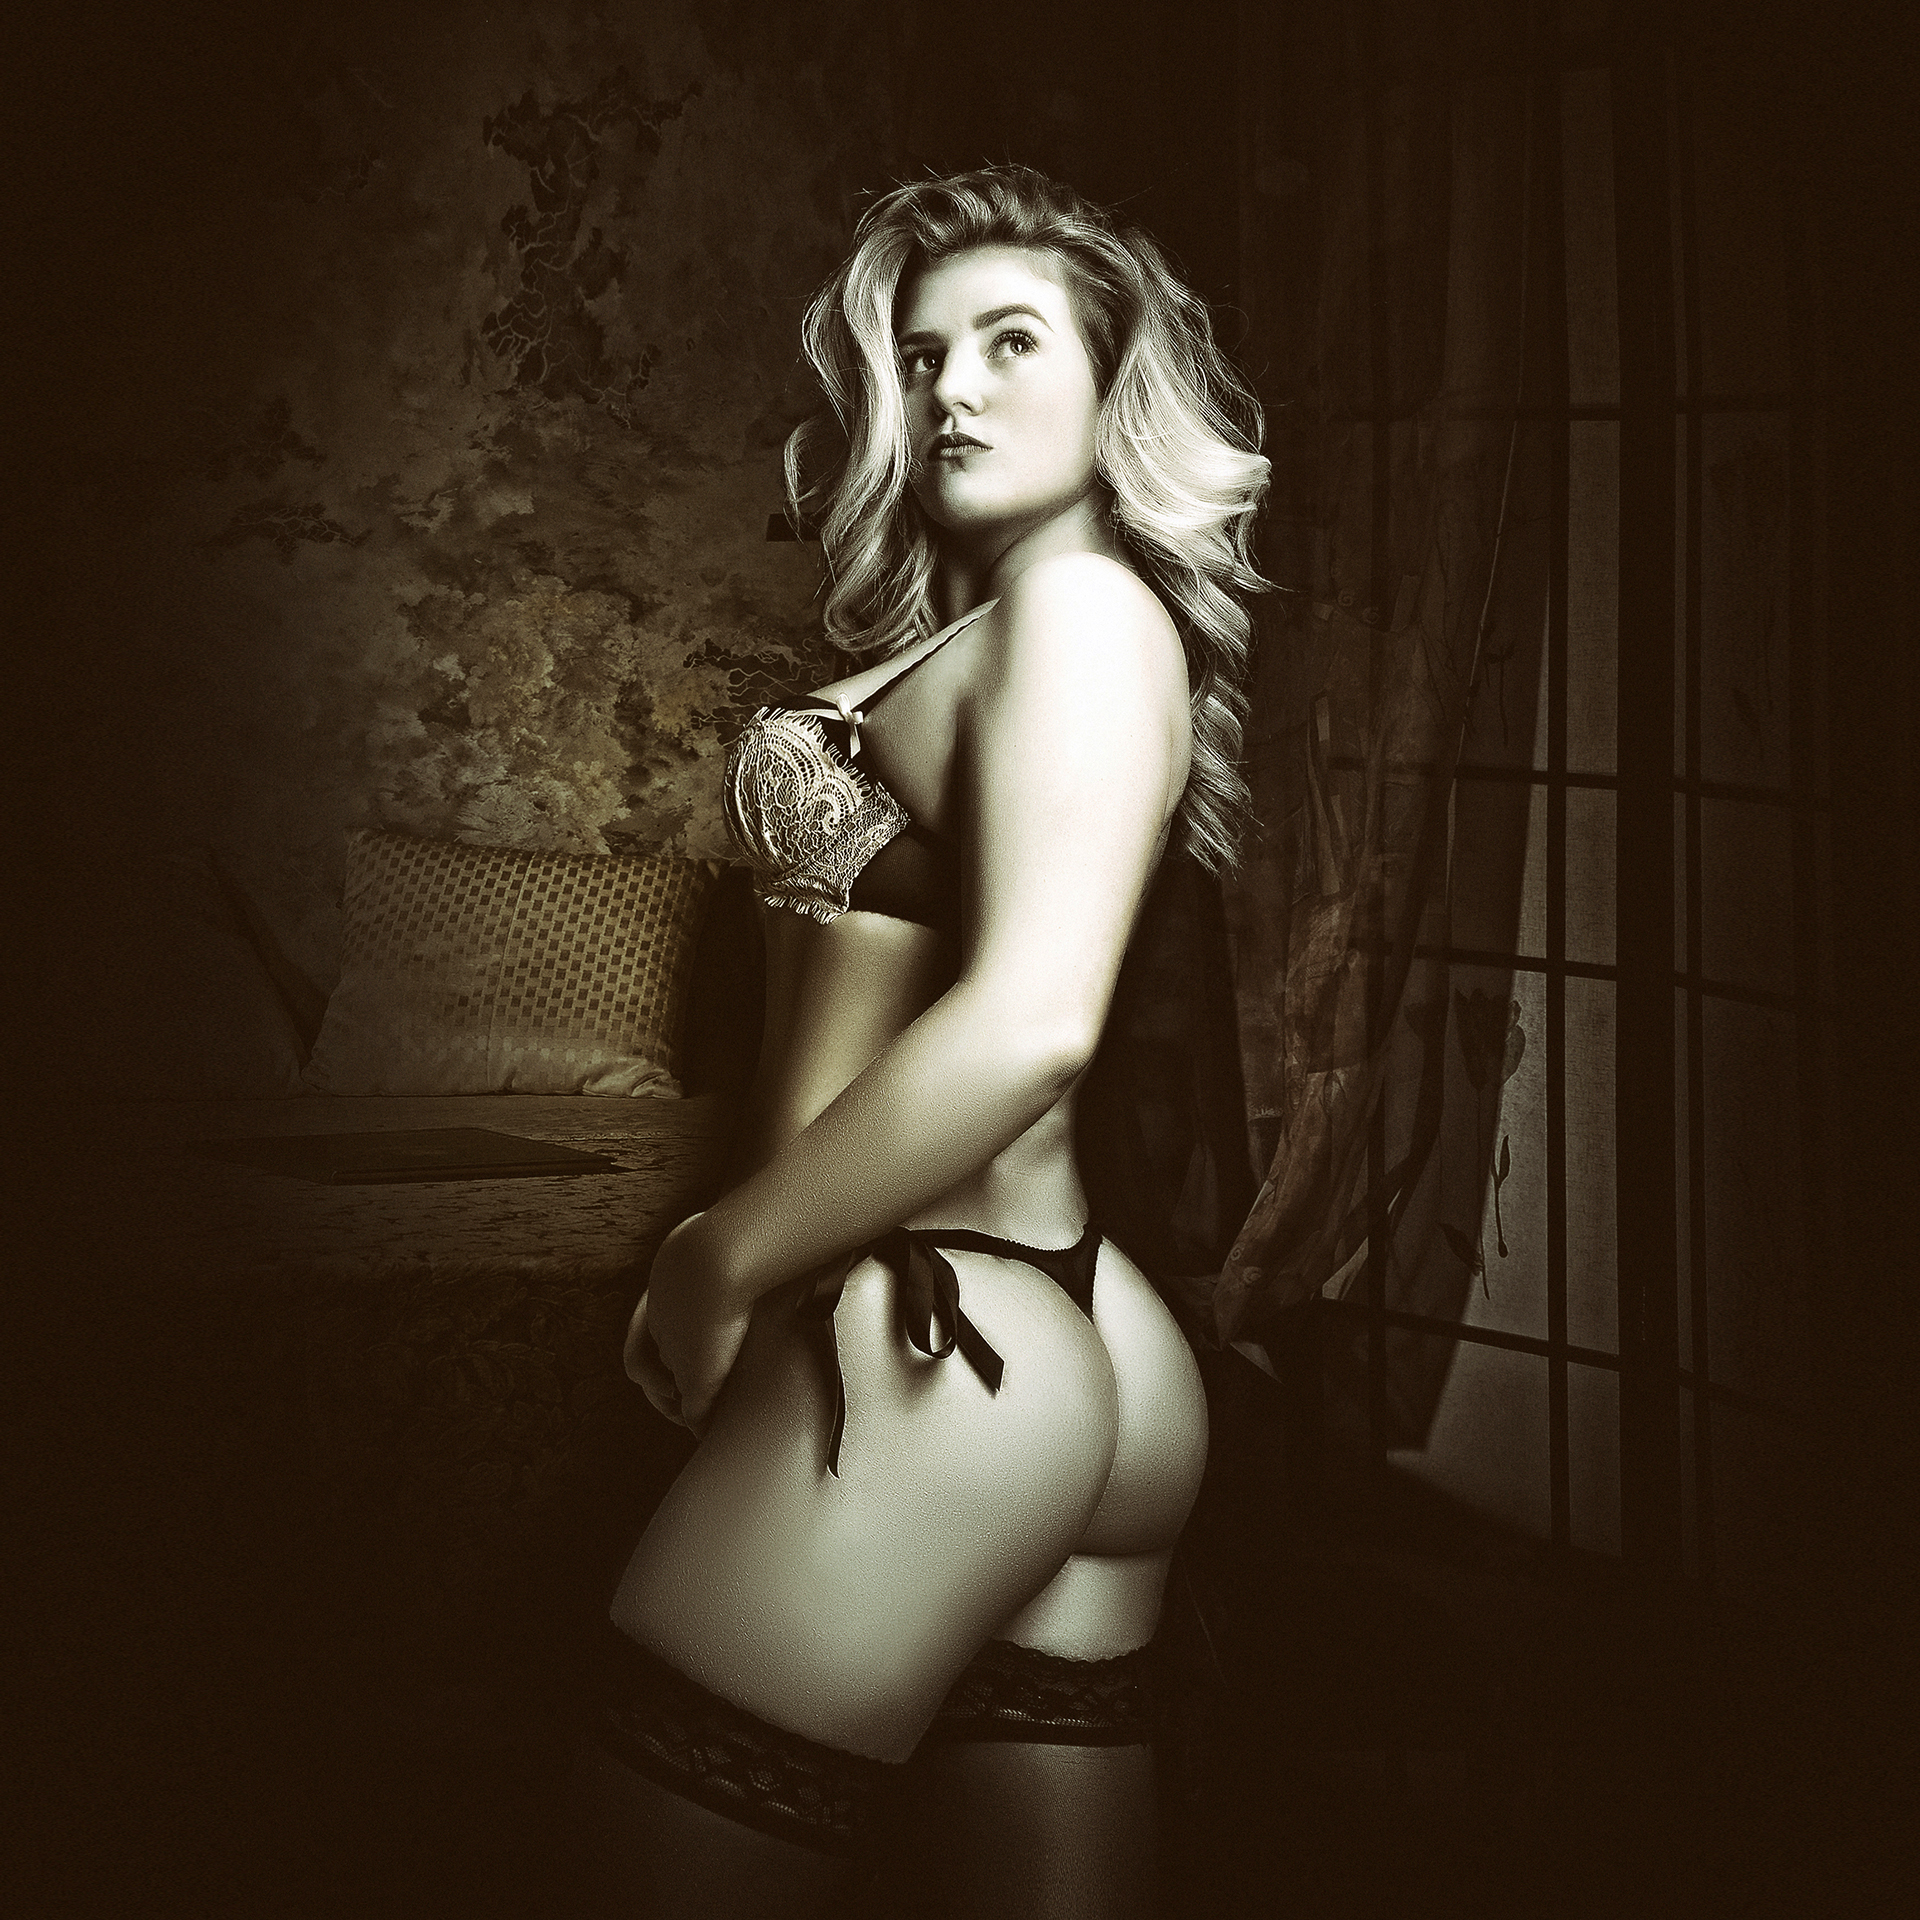 Boudoir photography wellingborough kline studios